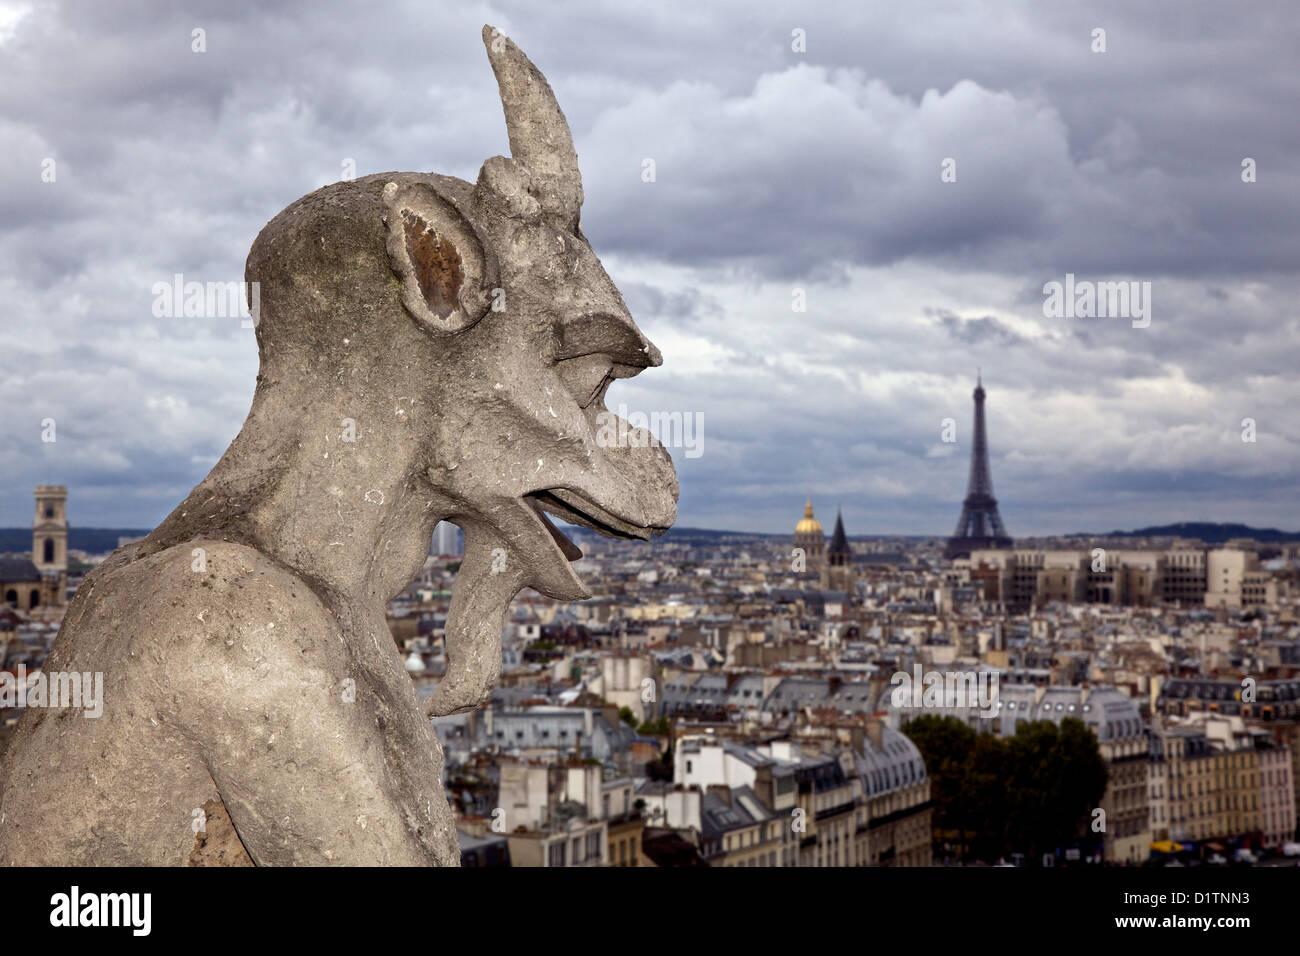 Gargoyle on the roof of the Notre Dame Cathedral in Paris, Ile de la Cite, France - Stock Image